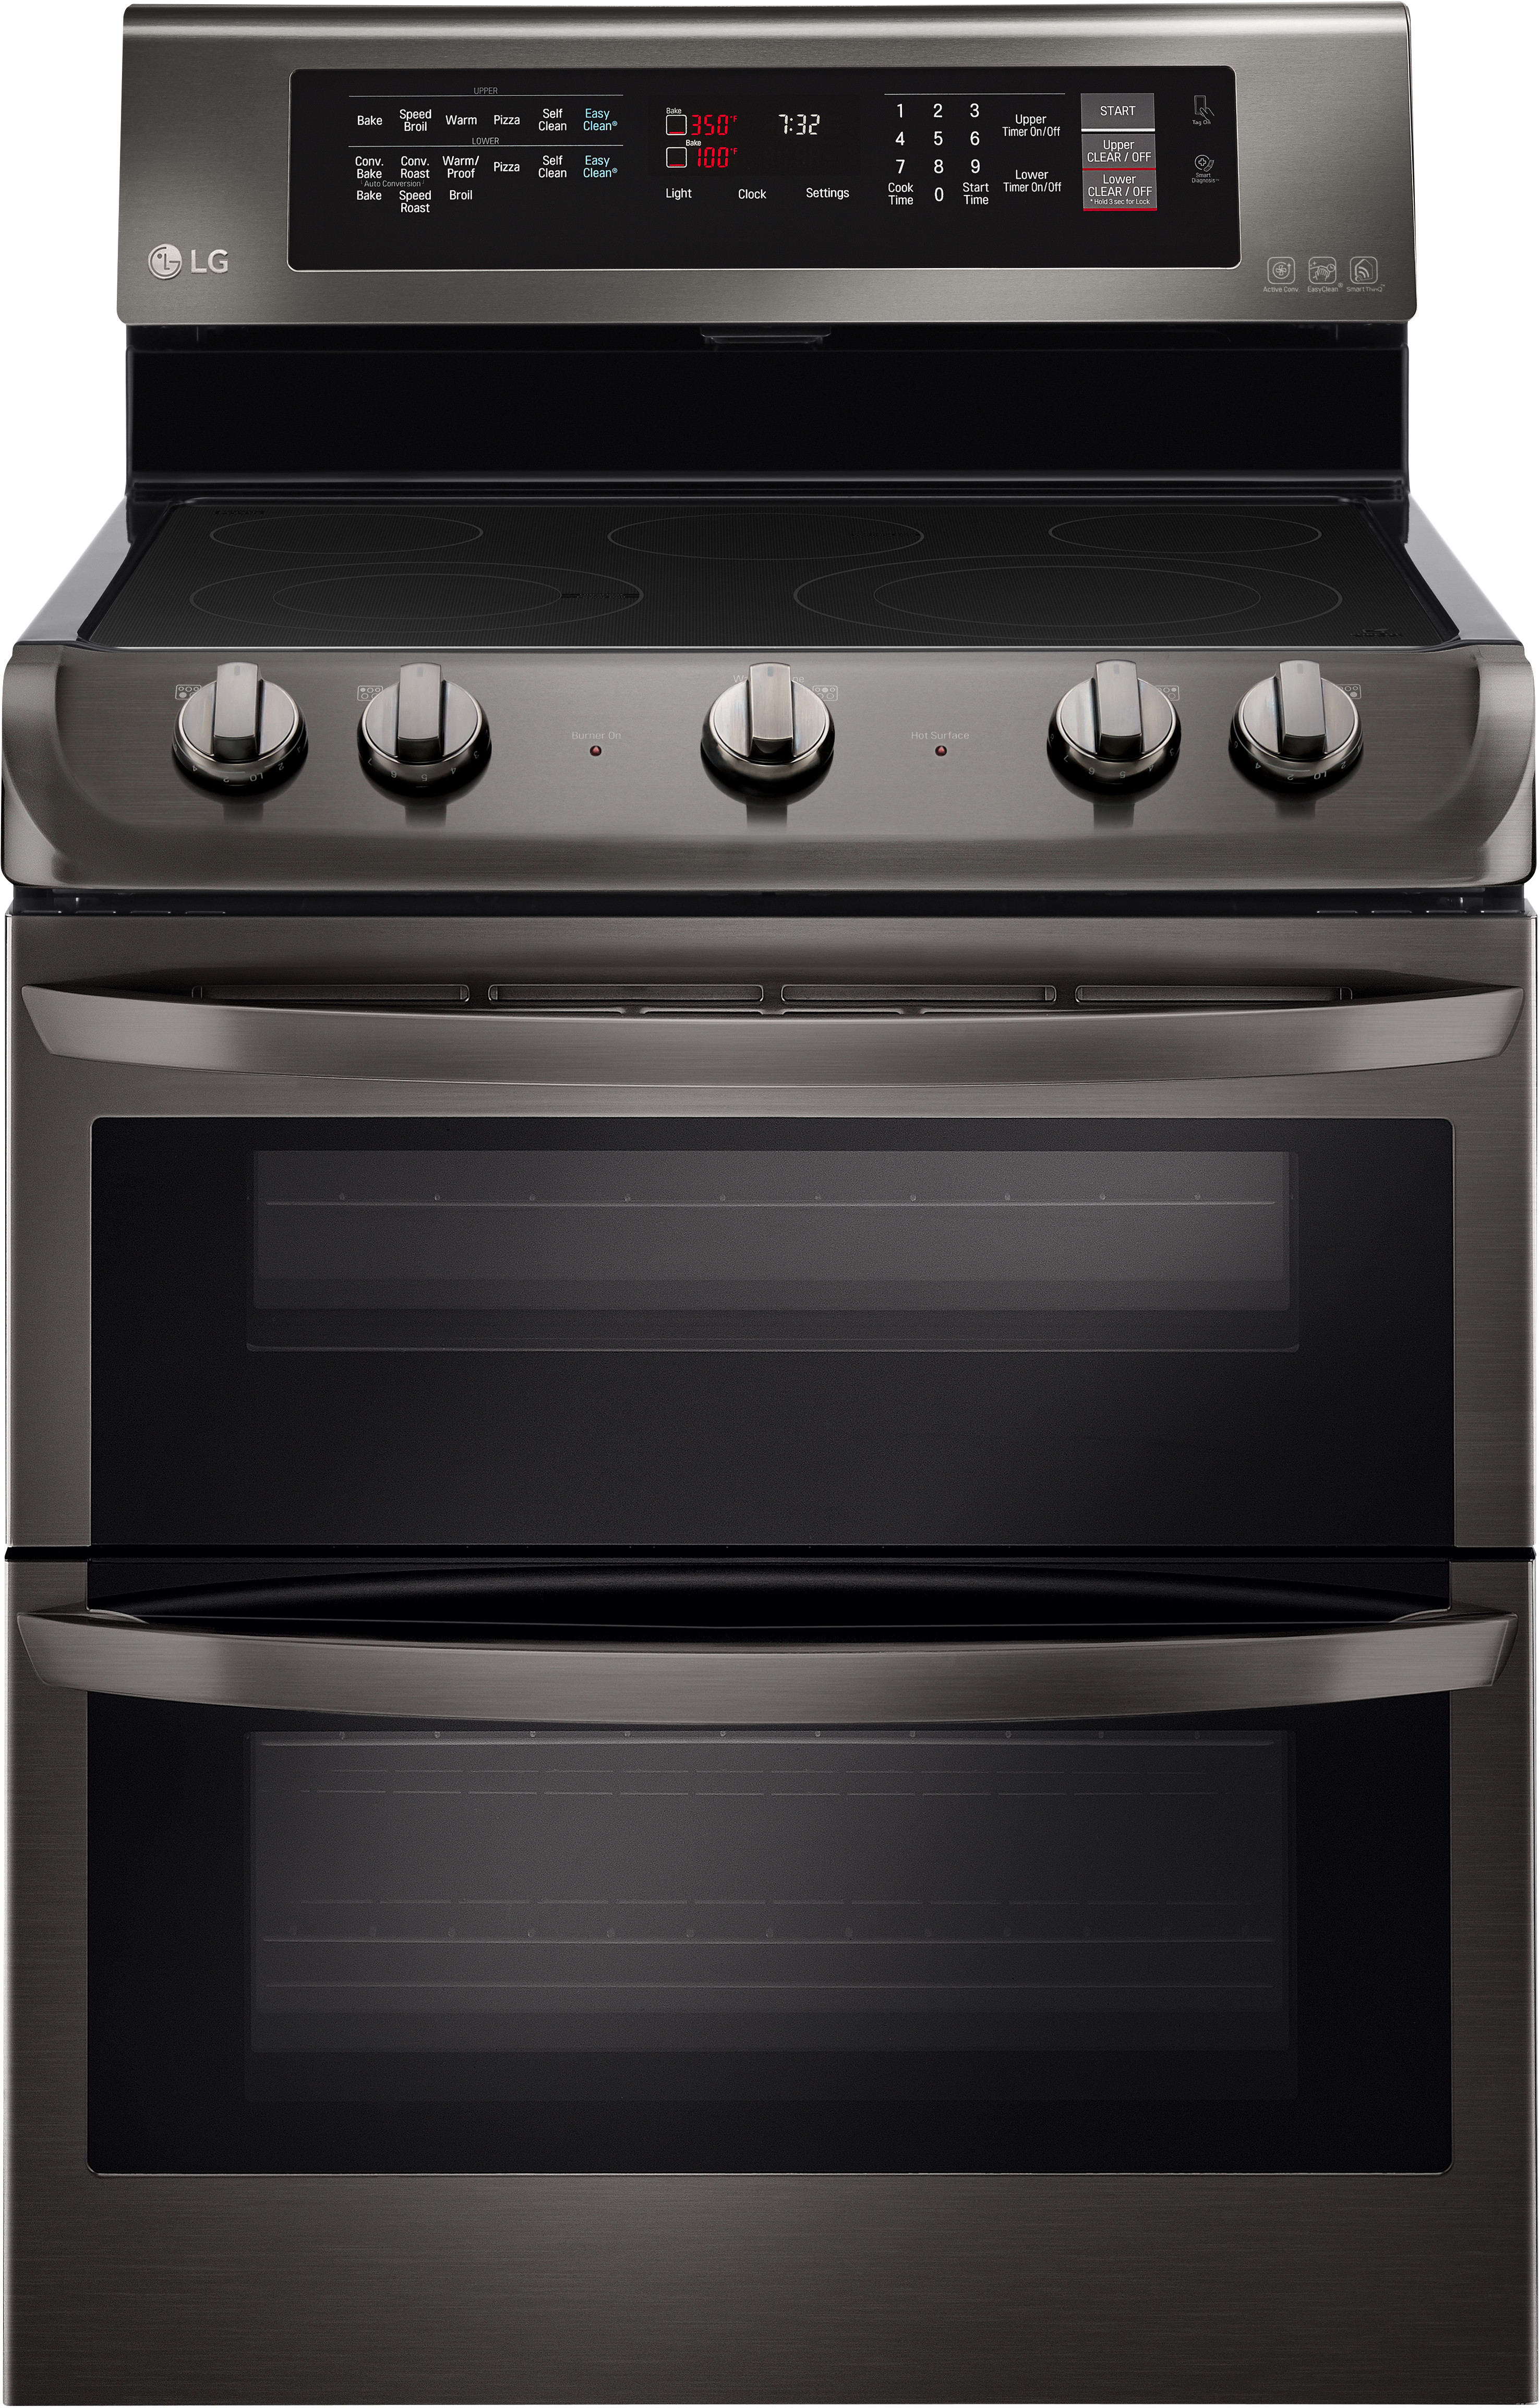 lg lde4413bd 30 inch dual oven electric range with 7.3 cu. ft